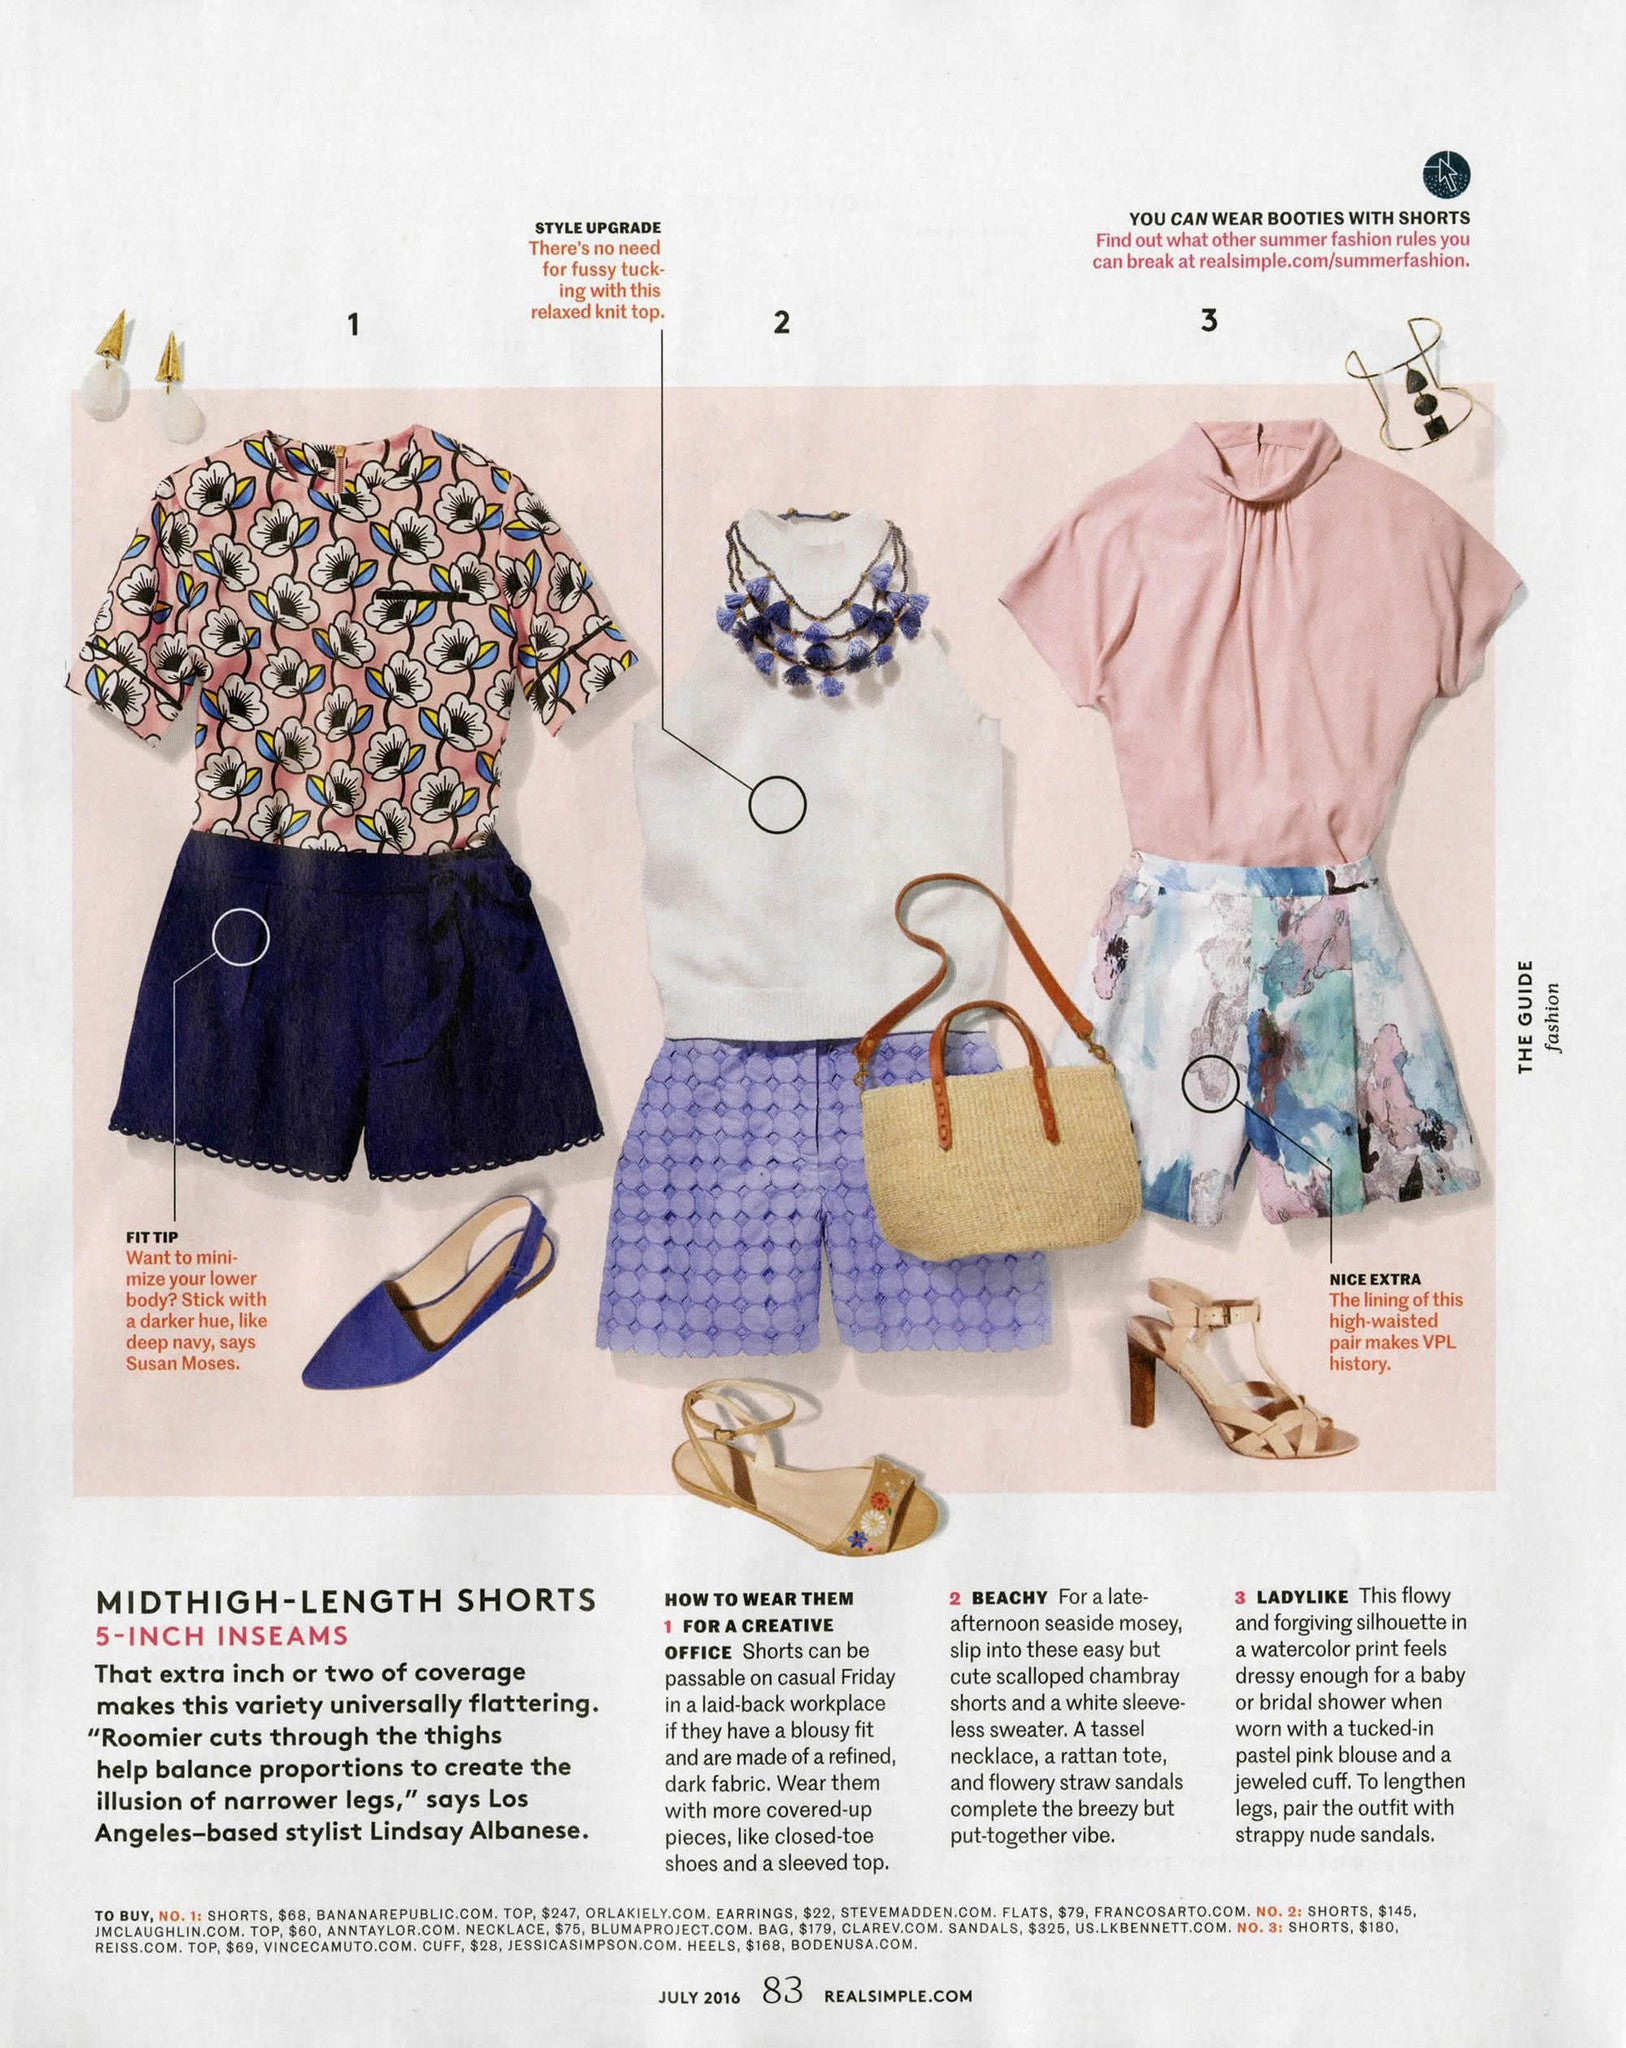 Https Blogs Campaigns 2017 06 08t095302 0700 Camila Stripes Skirt Leux Studio Navy L 630 Real Simple 2v1467828890